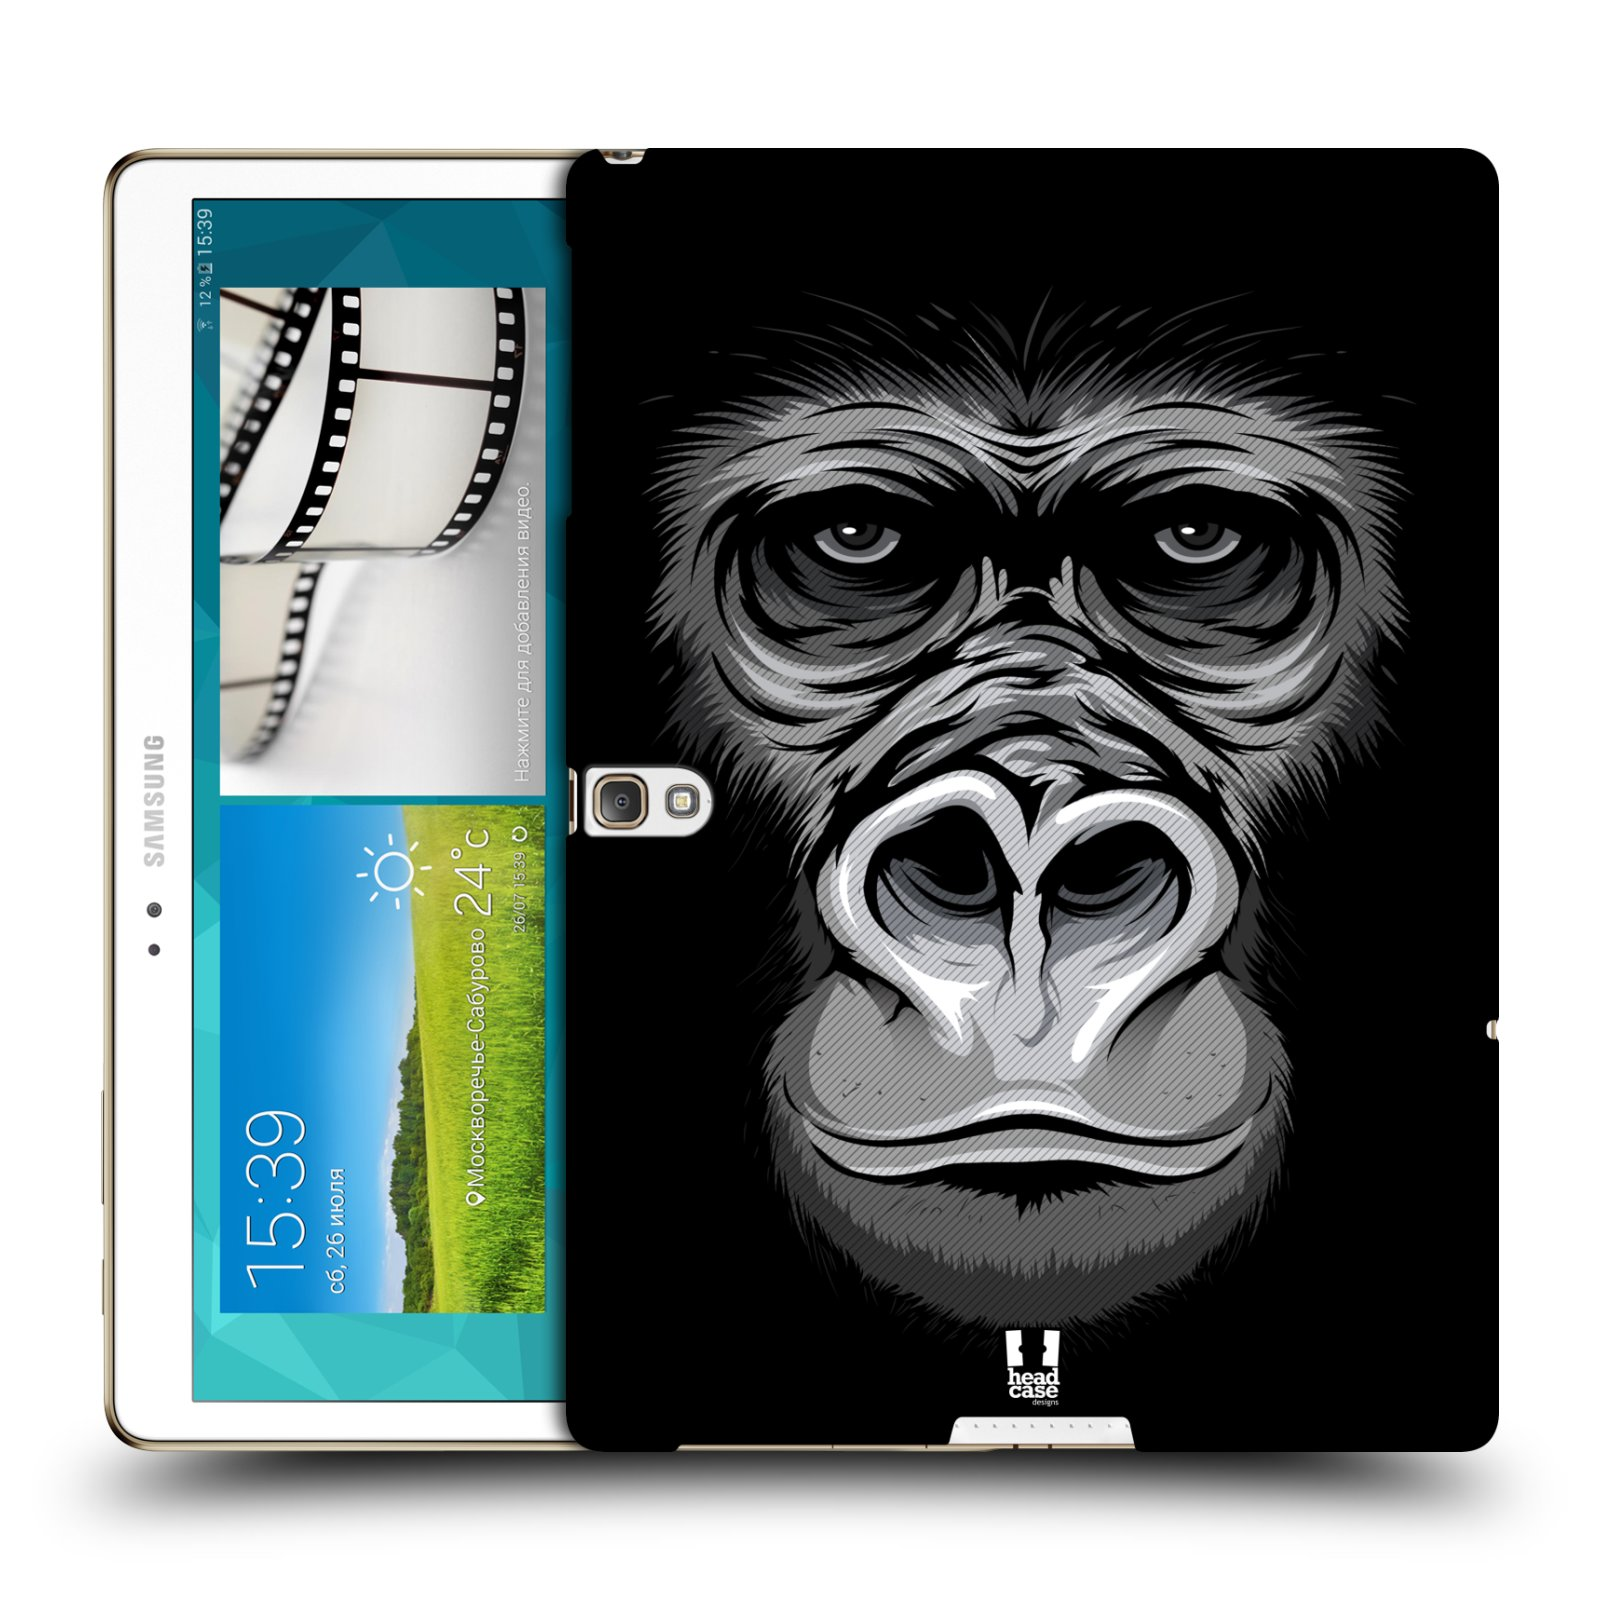 HEAD CASE DESIGNS FACE ILLUSTRATE 2 CASE FOR SAMSUNG GALAXY TAB S 10.5 WIFI T800